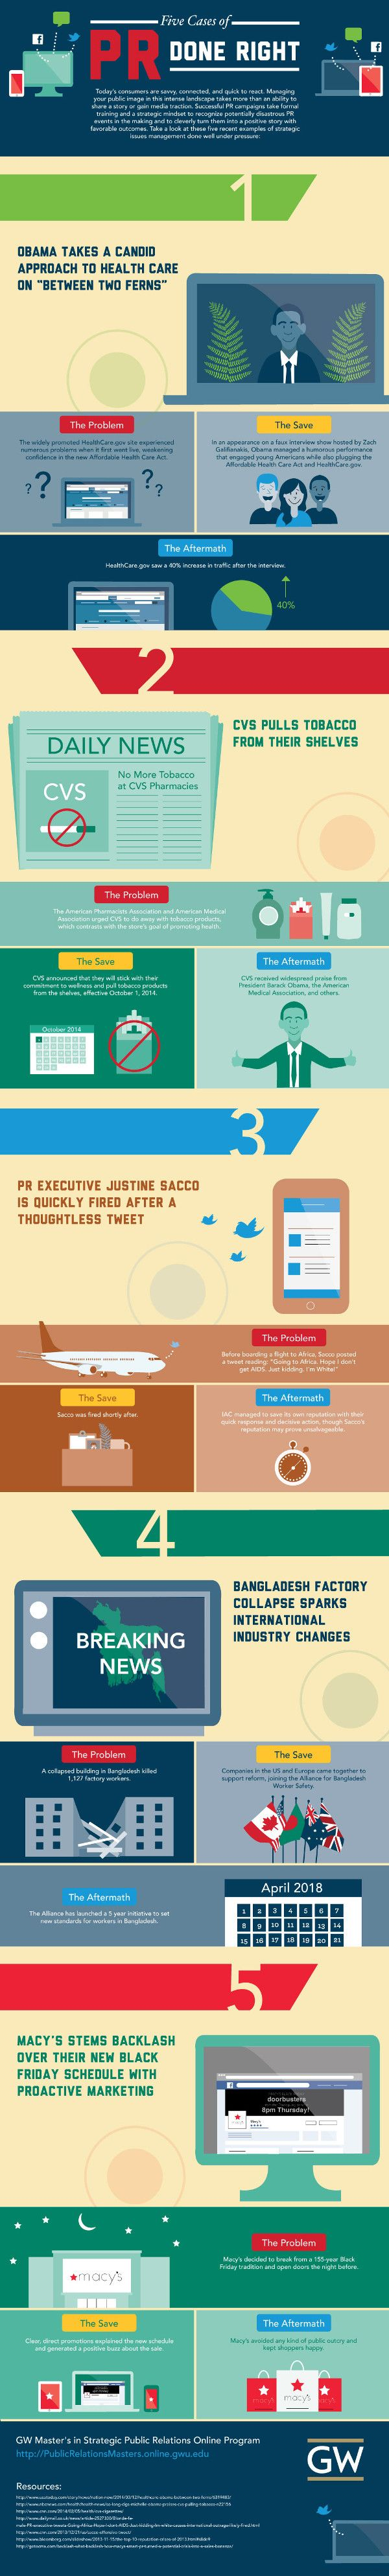 5 cases of PR done right: This infographic highlights great examples of public relations campaigns and responses that bode well for the brands they represented.